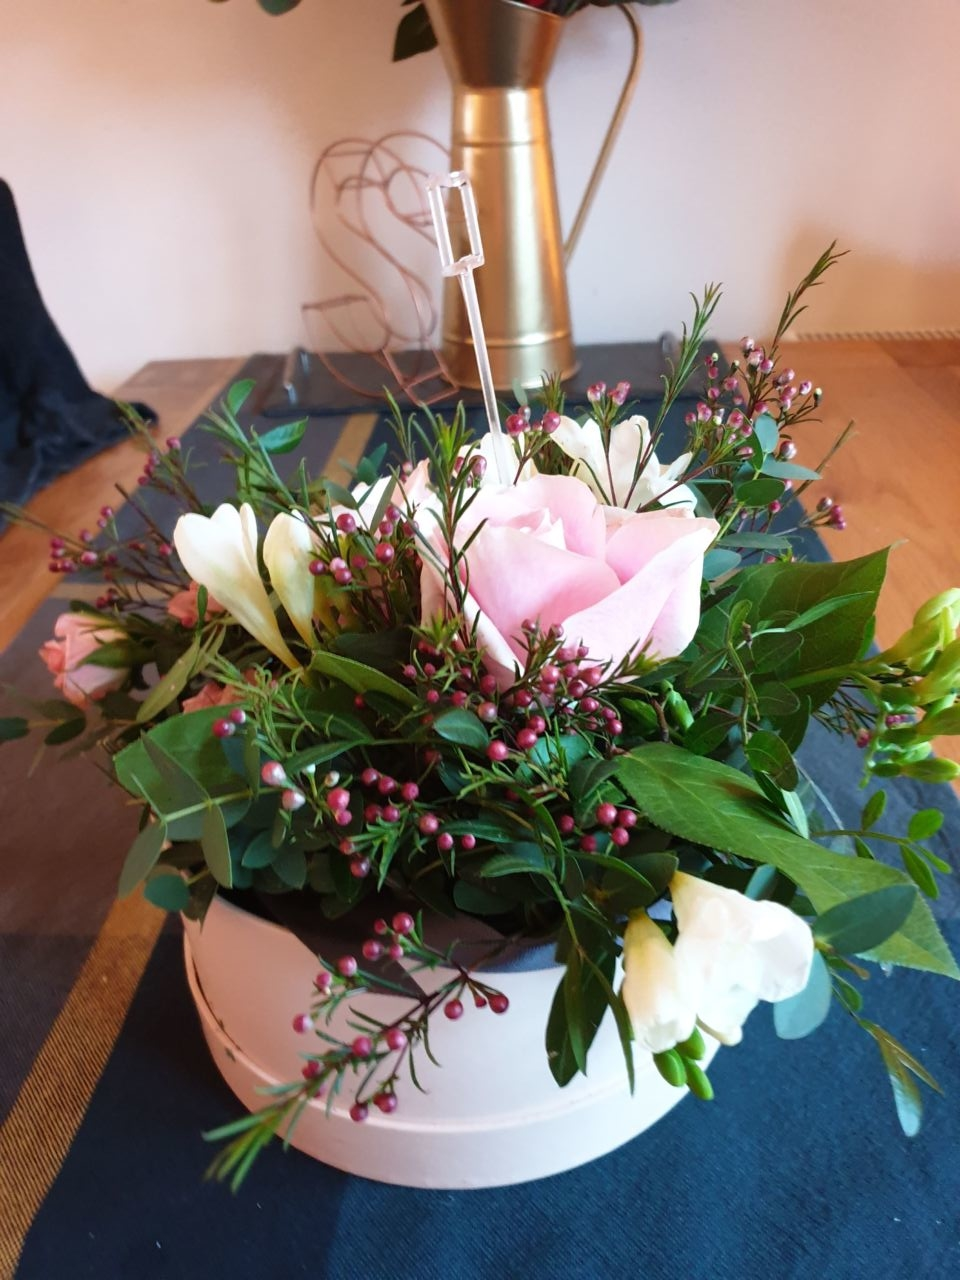 Flowers received for newborn baby